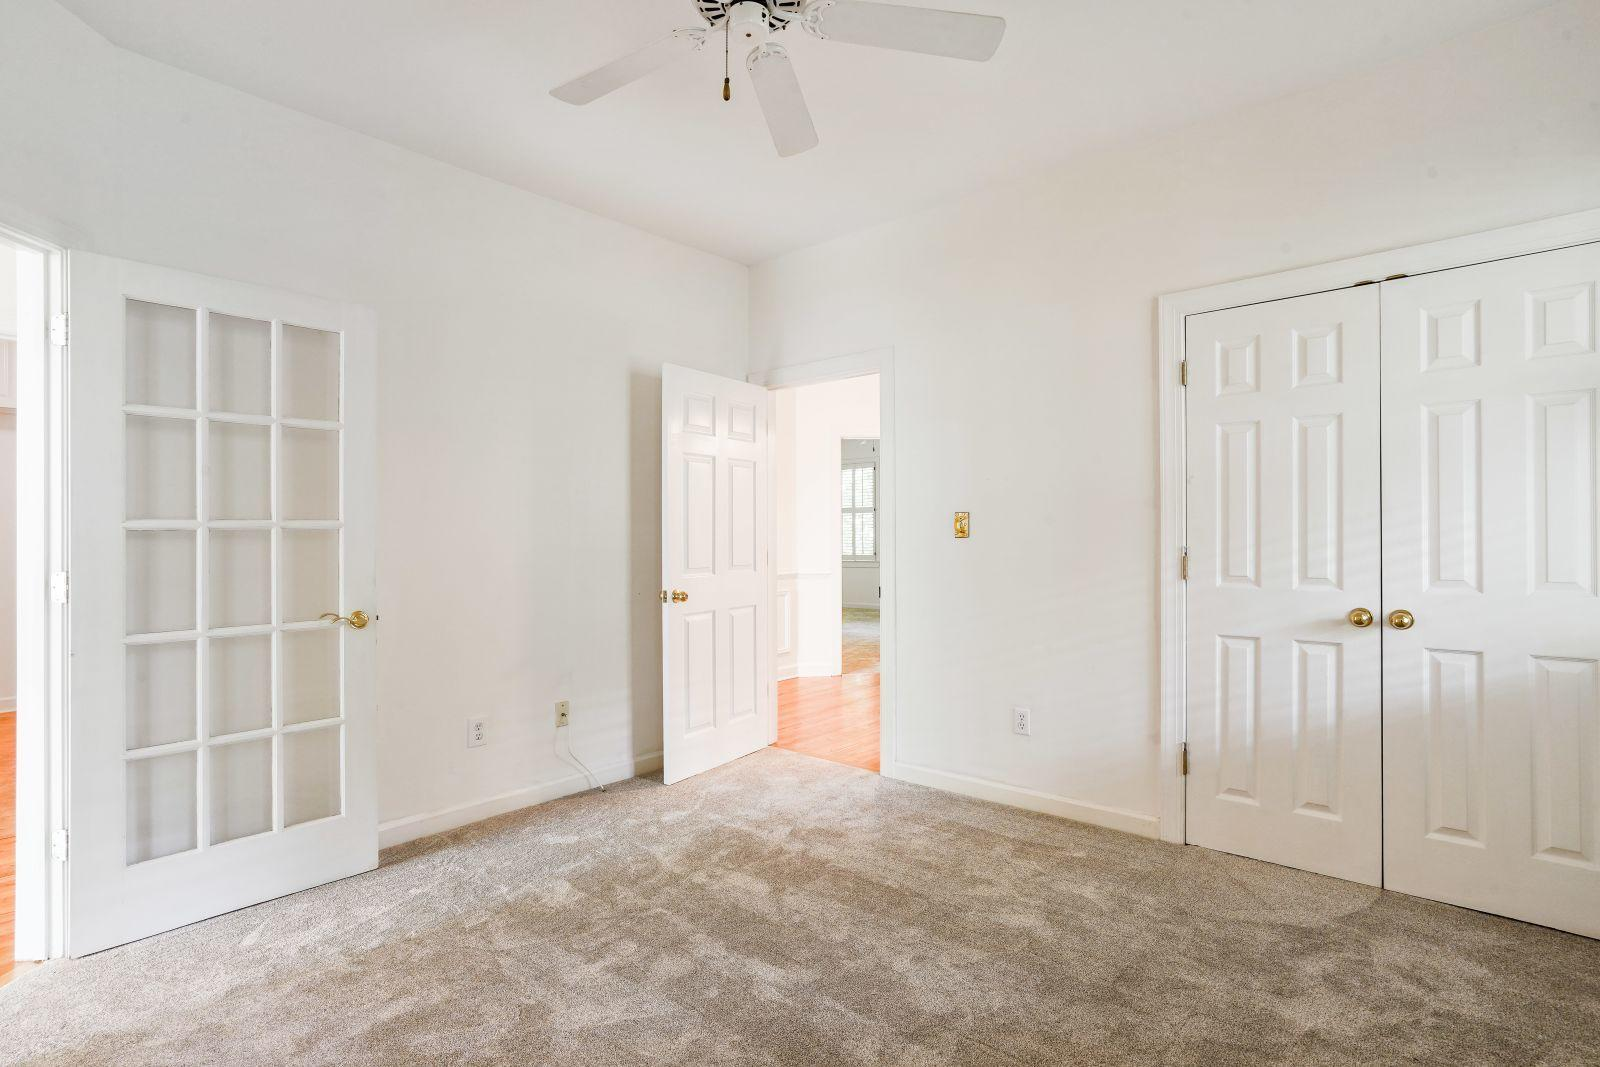 Simmons Pointe Homes For Sale - 1551 Ben Sawyer, Mount Pleasant, SC - 9